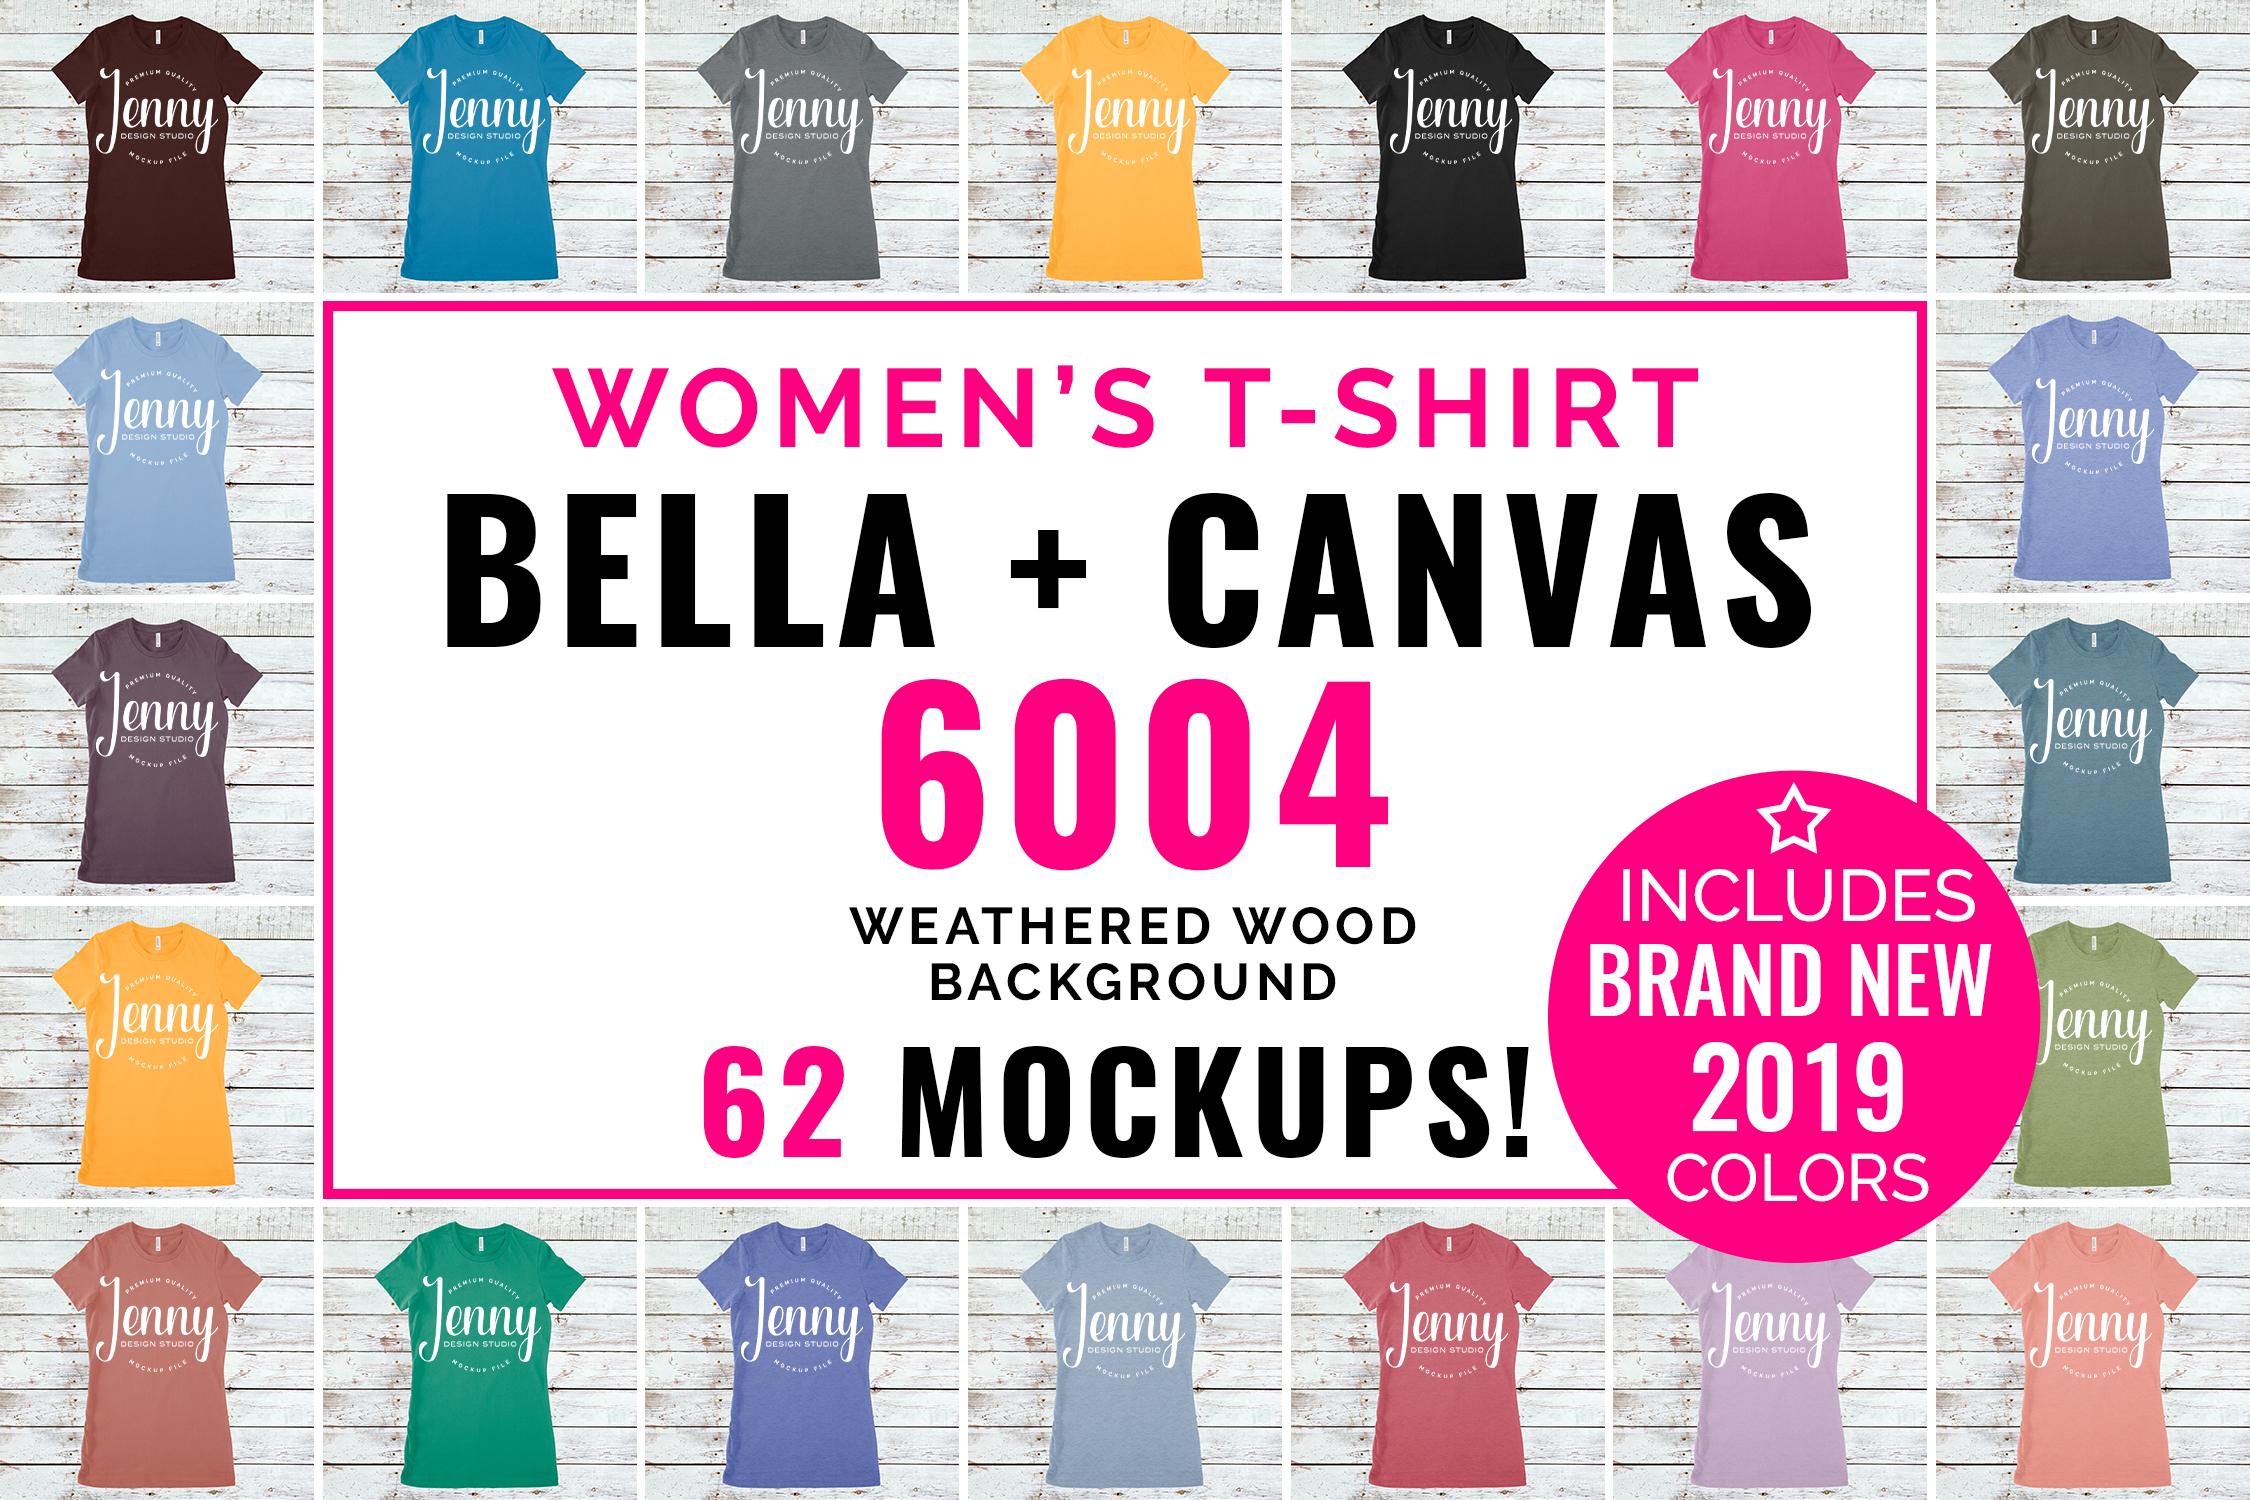 Bella Canvas 6004 Unisex Mockup Bundle, Womens T-Shirt example image 1